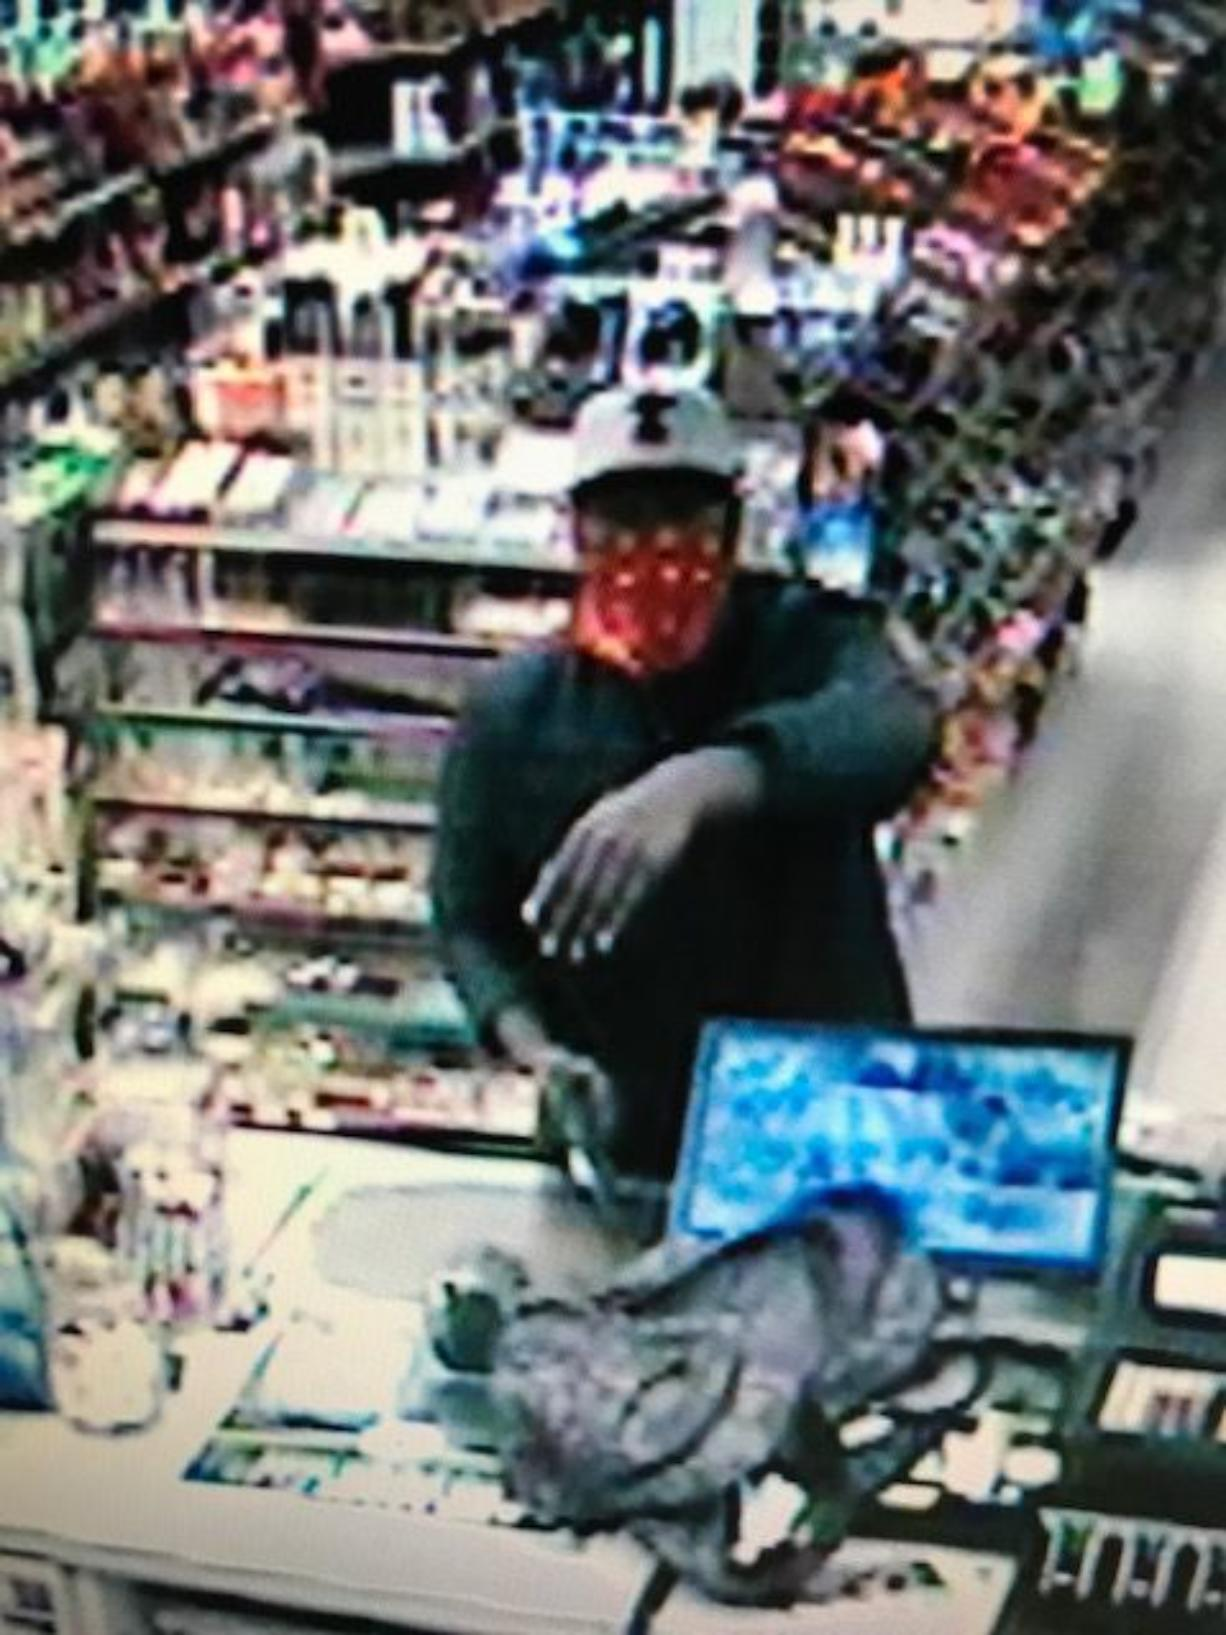 The man suspected of fatally shooting an employee during a robbery at Holt's Quik Chek in Kelso.